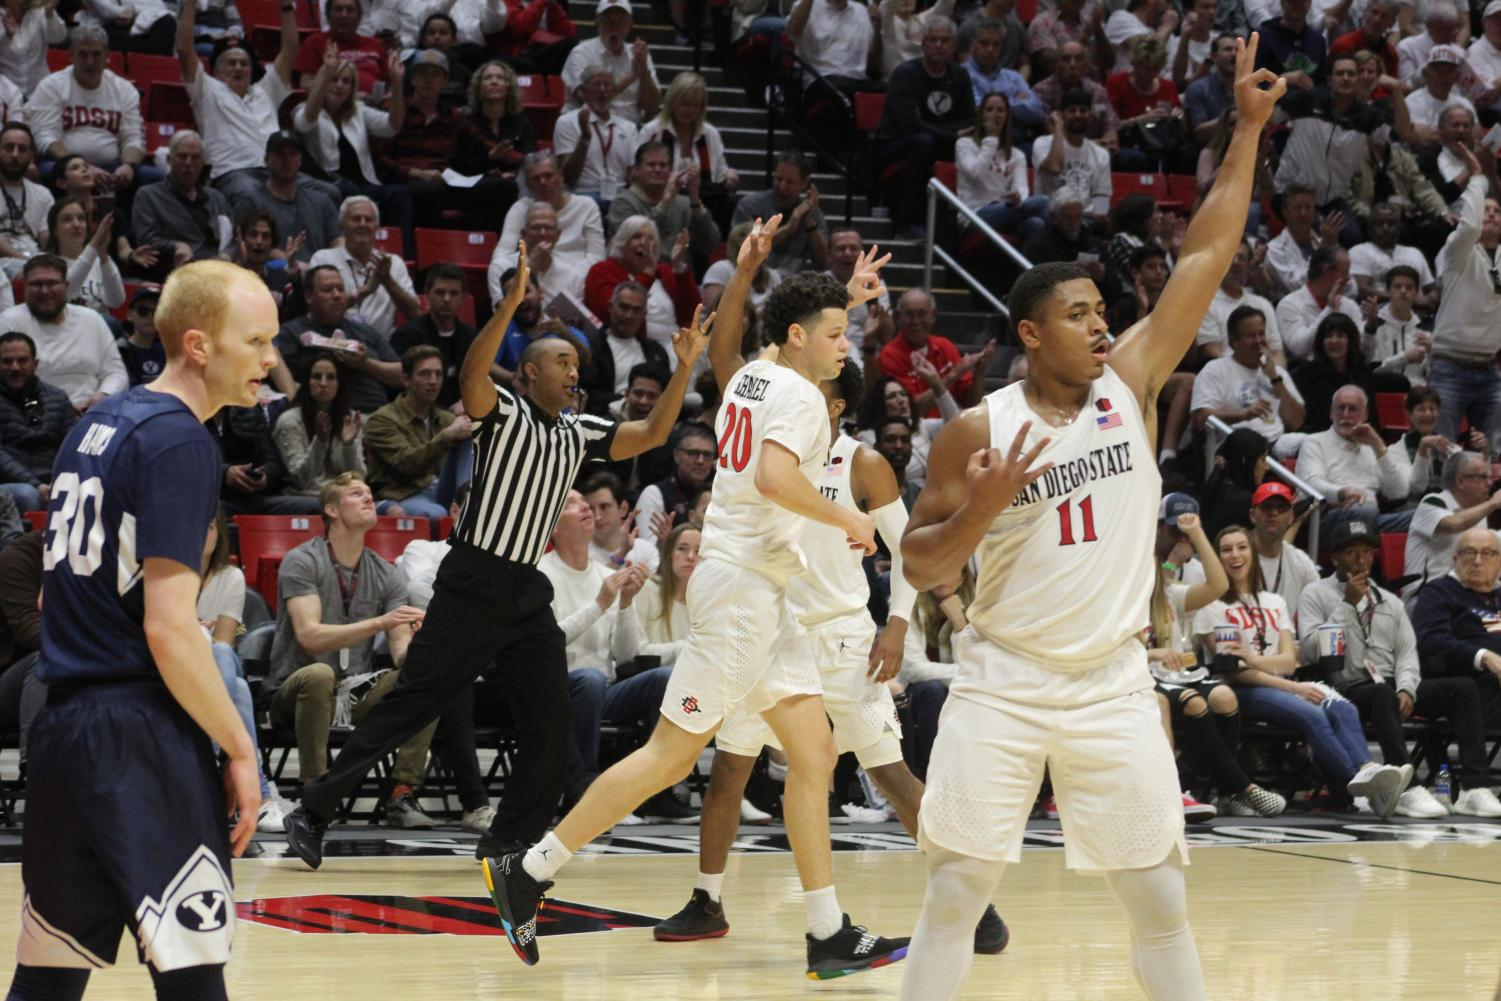 Sophomore forward Matt Mitchell throws up three fingers after knocking down a shot from behind the arc during the first half of the Aztecs 90-81 victory over BYU on Dec. 22 at Viejas Arena. Mitchell finished with 22 points.